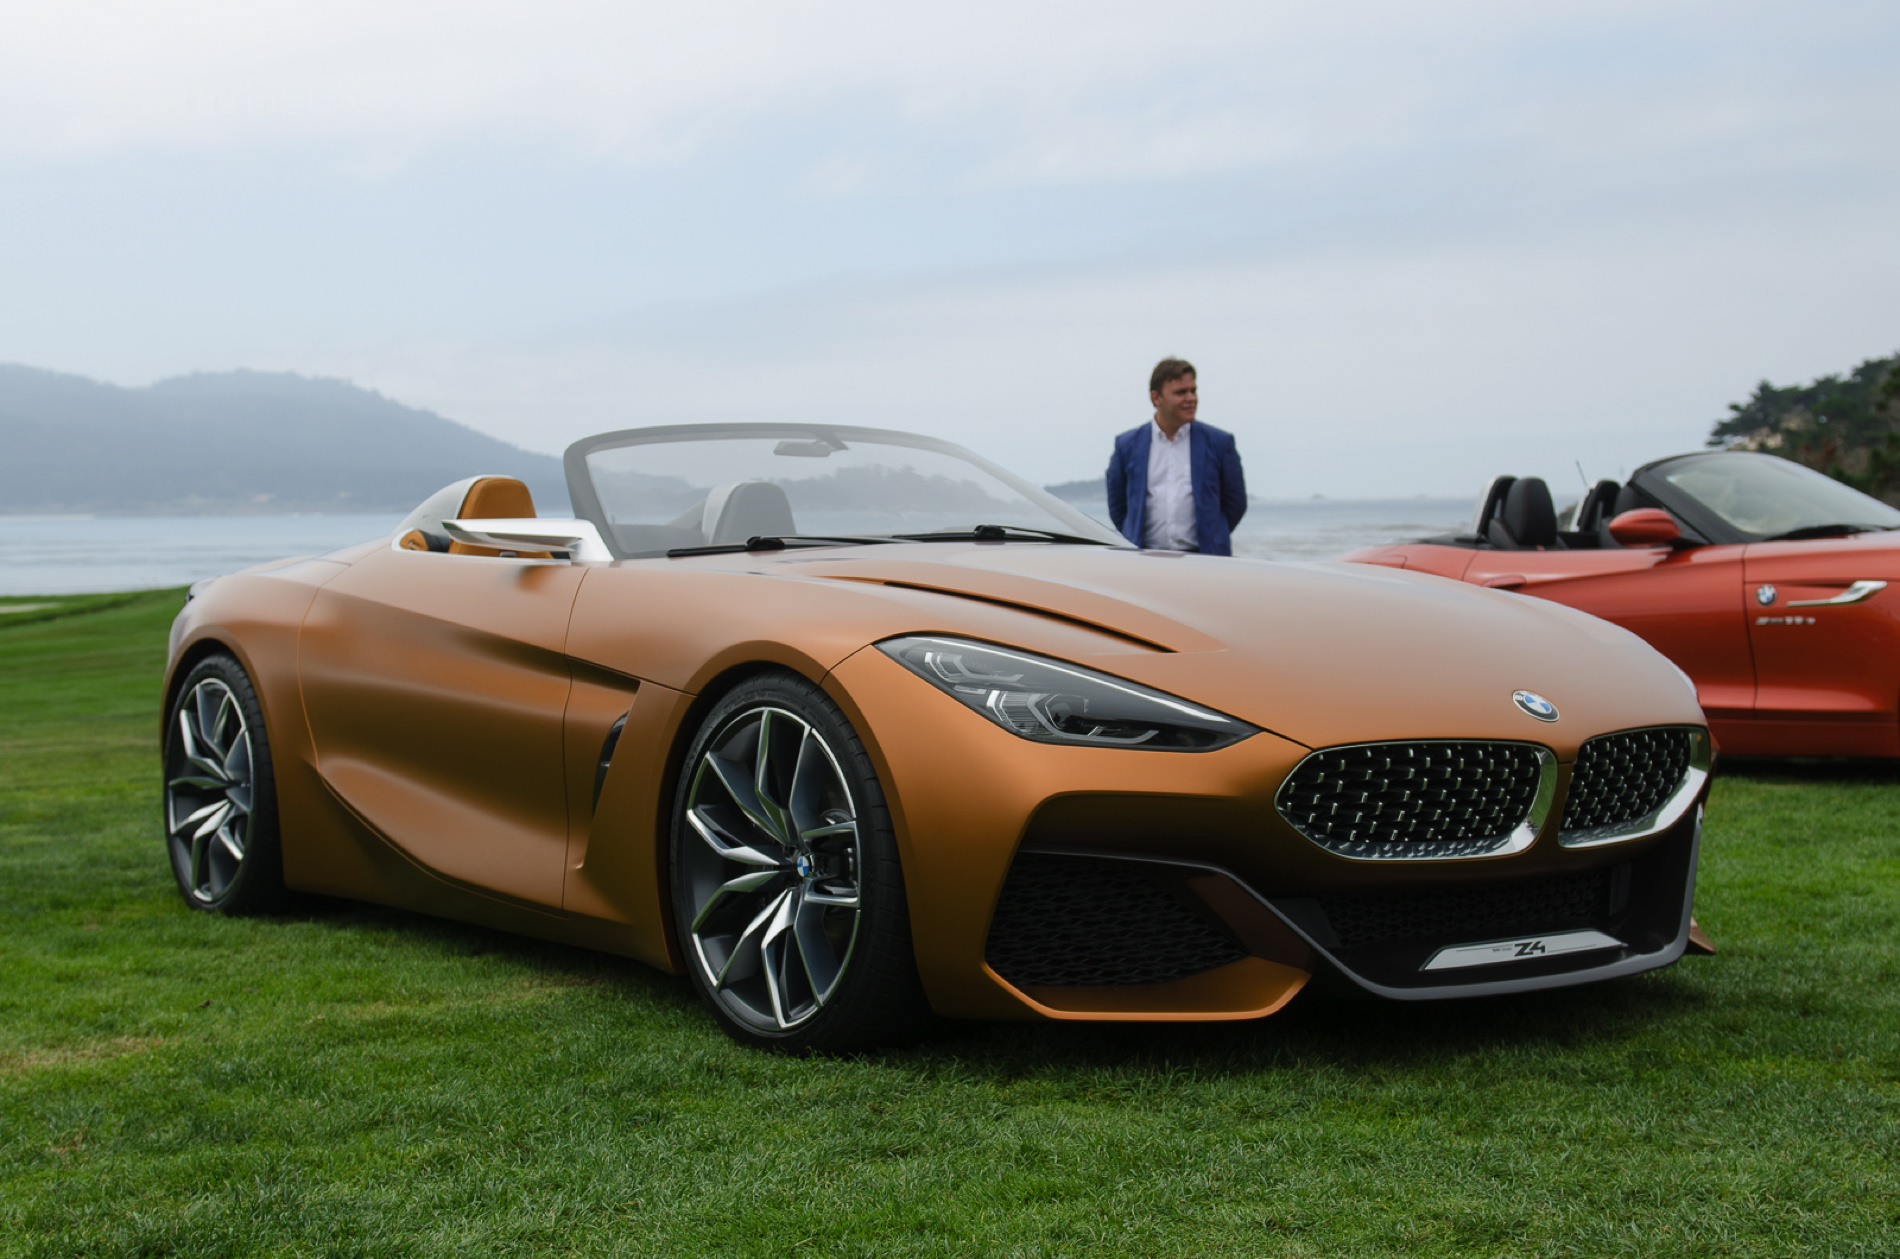 BMW-Z4-Concept-Pebble-Beach-21.jpg